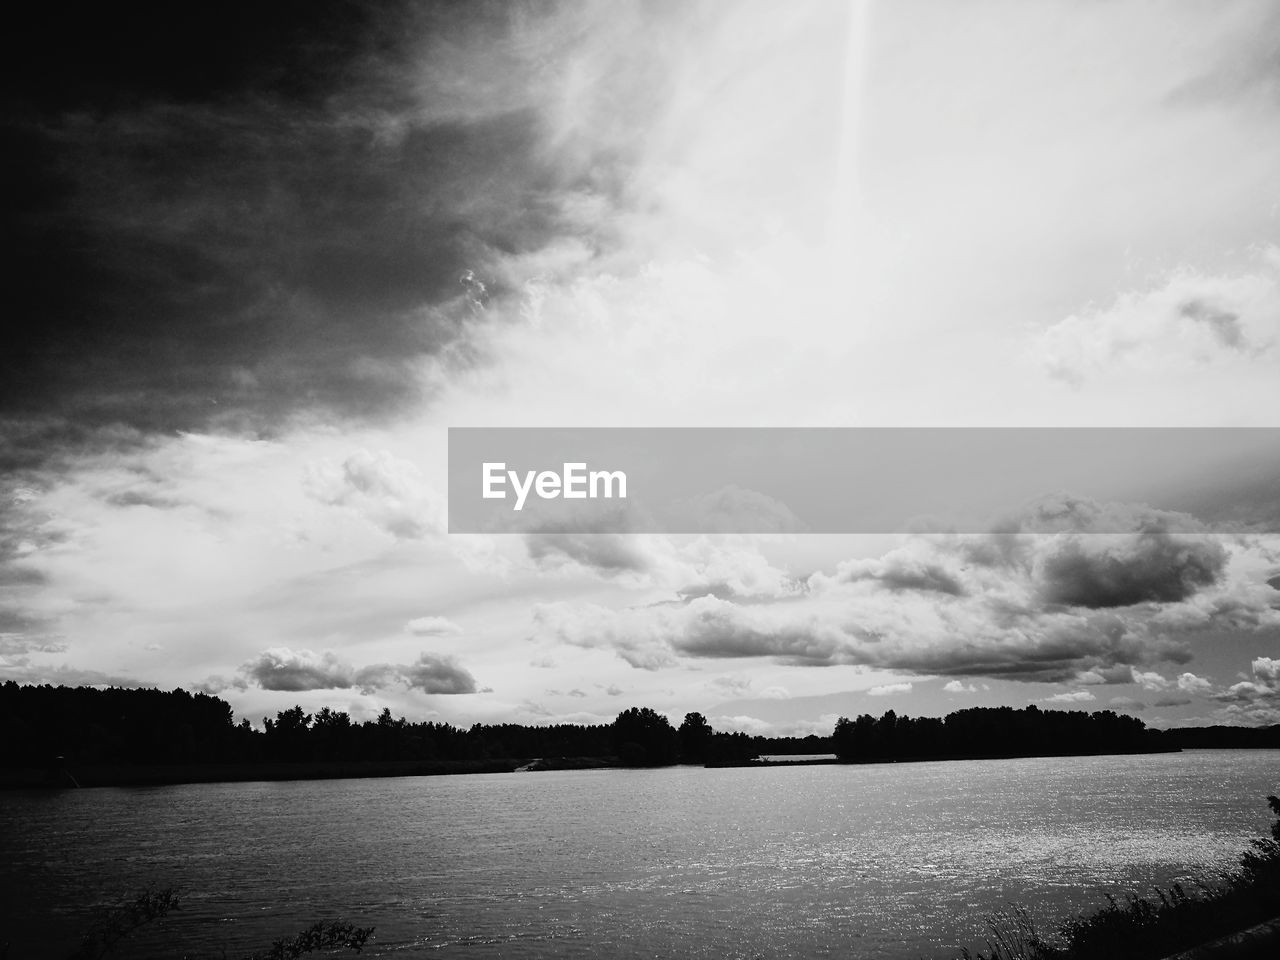 sky, cloud - sky, scenics, nature, tranquility, beauty in nature, water, tranquil scene, no people, outdoors, lake, landscape, tree, day